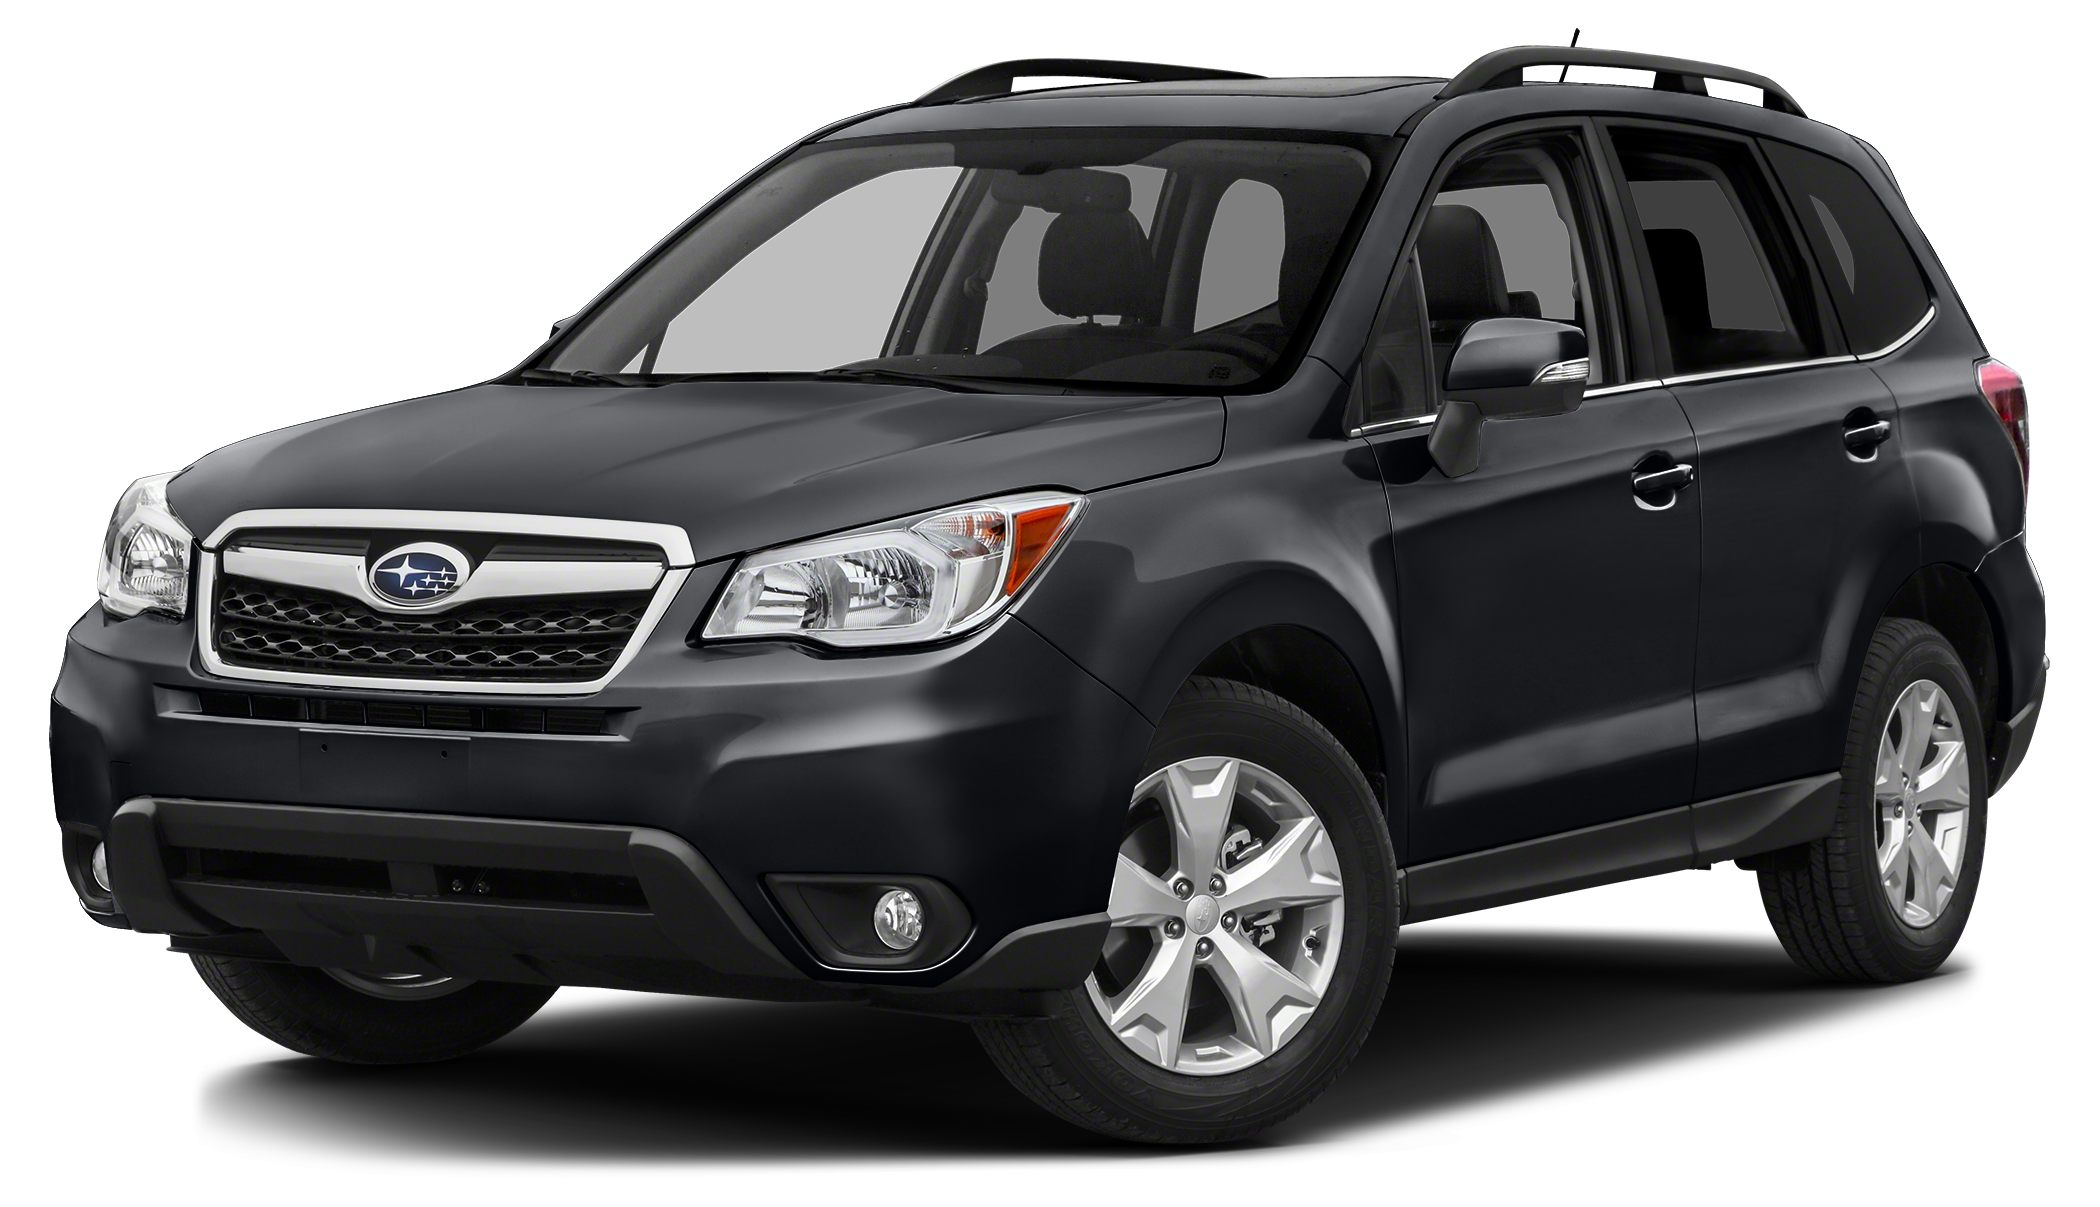 2015 Subaru Forester 25i Limited Miles 0Color Dark Gray Metallic Stock 151665A VIN JF2SJAHC